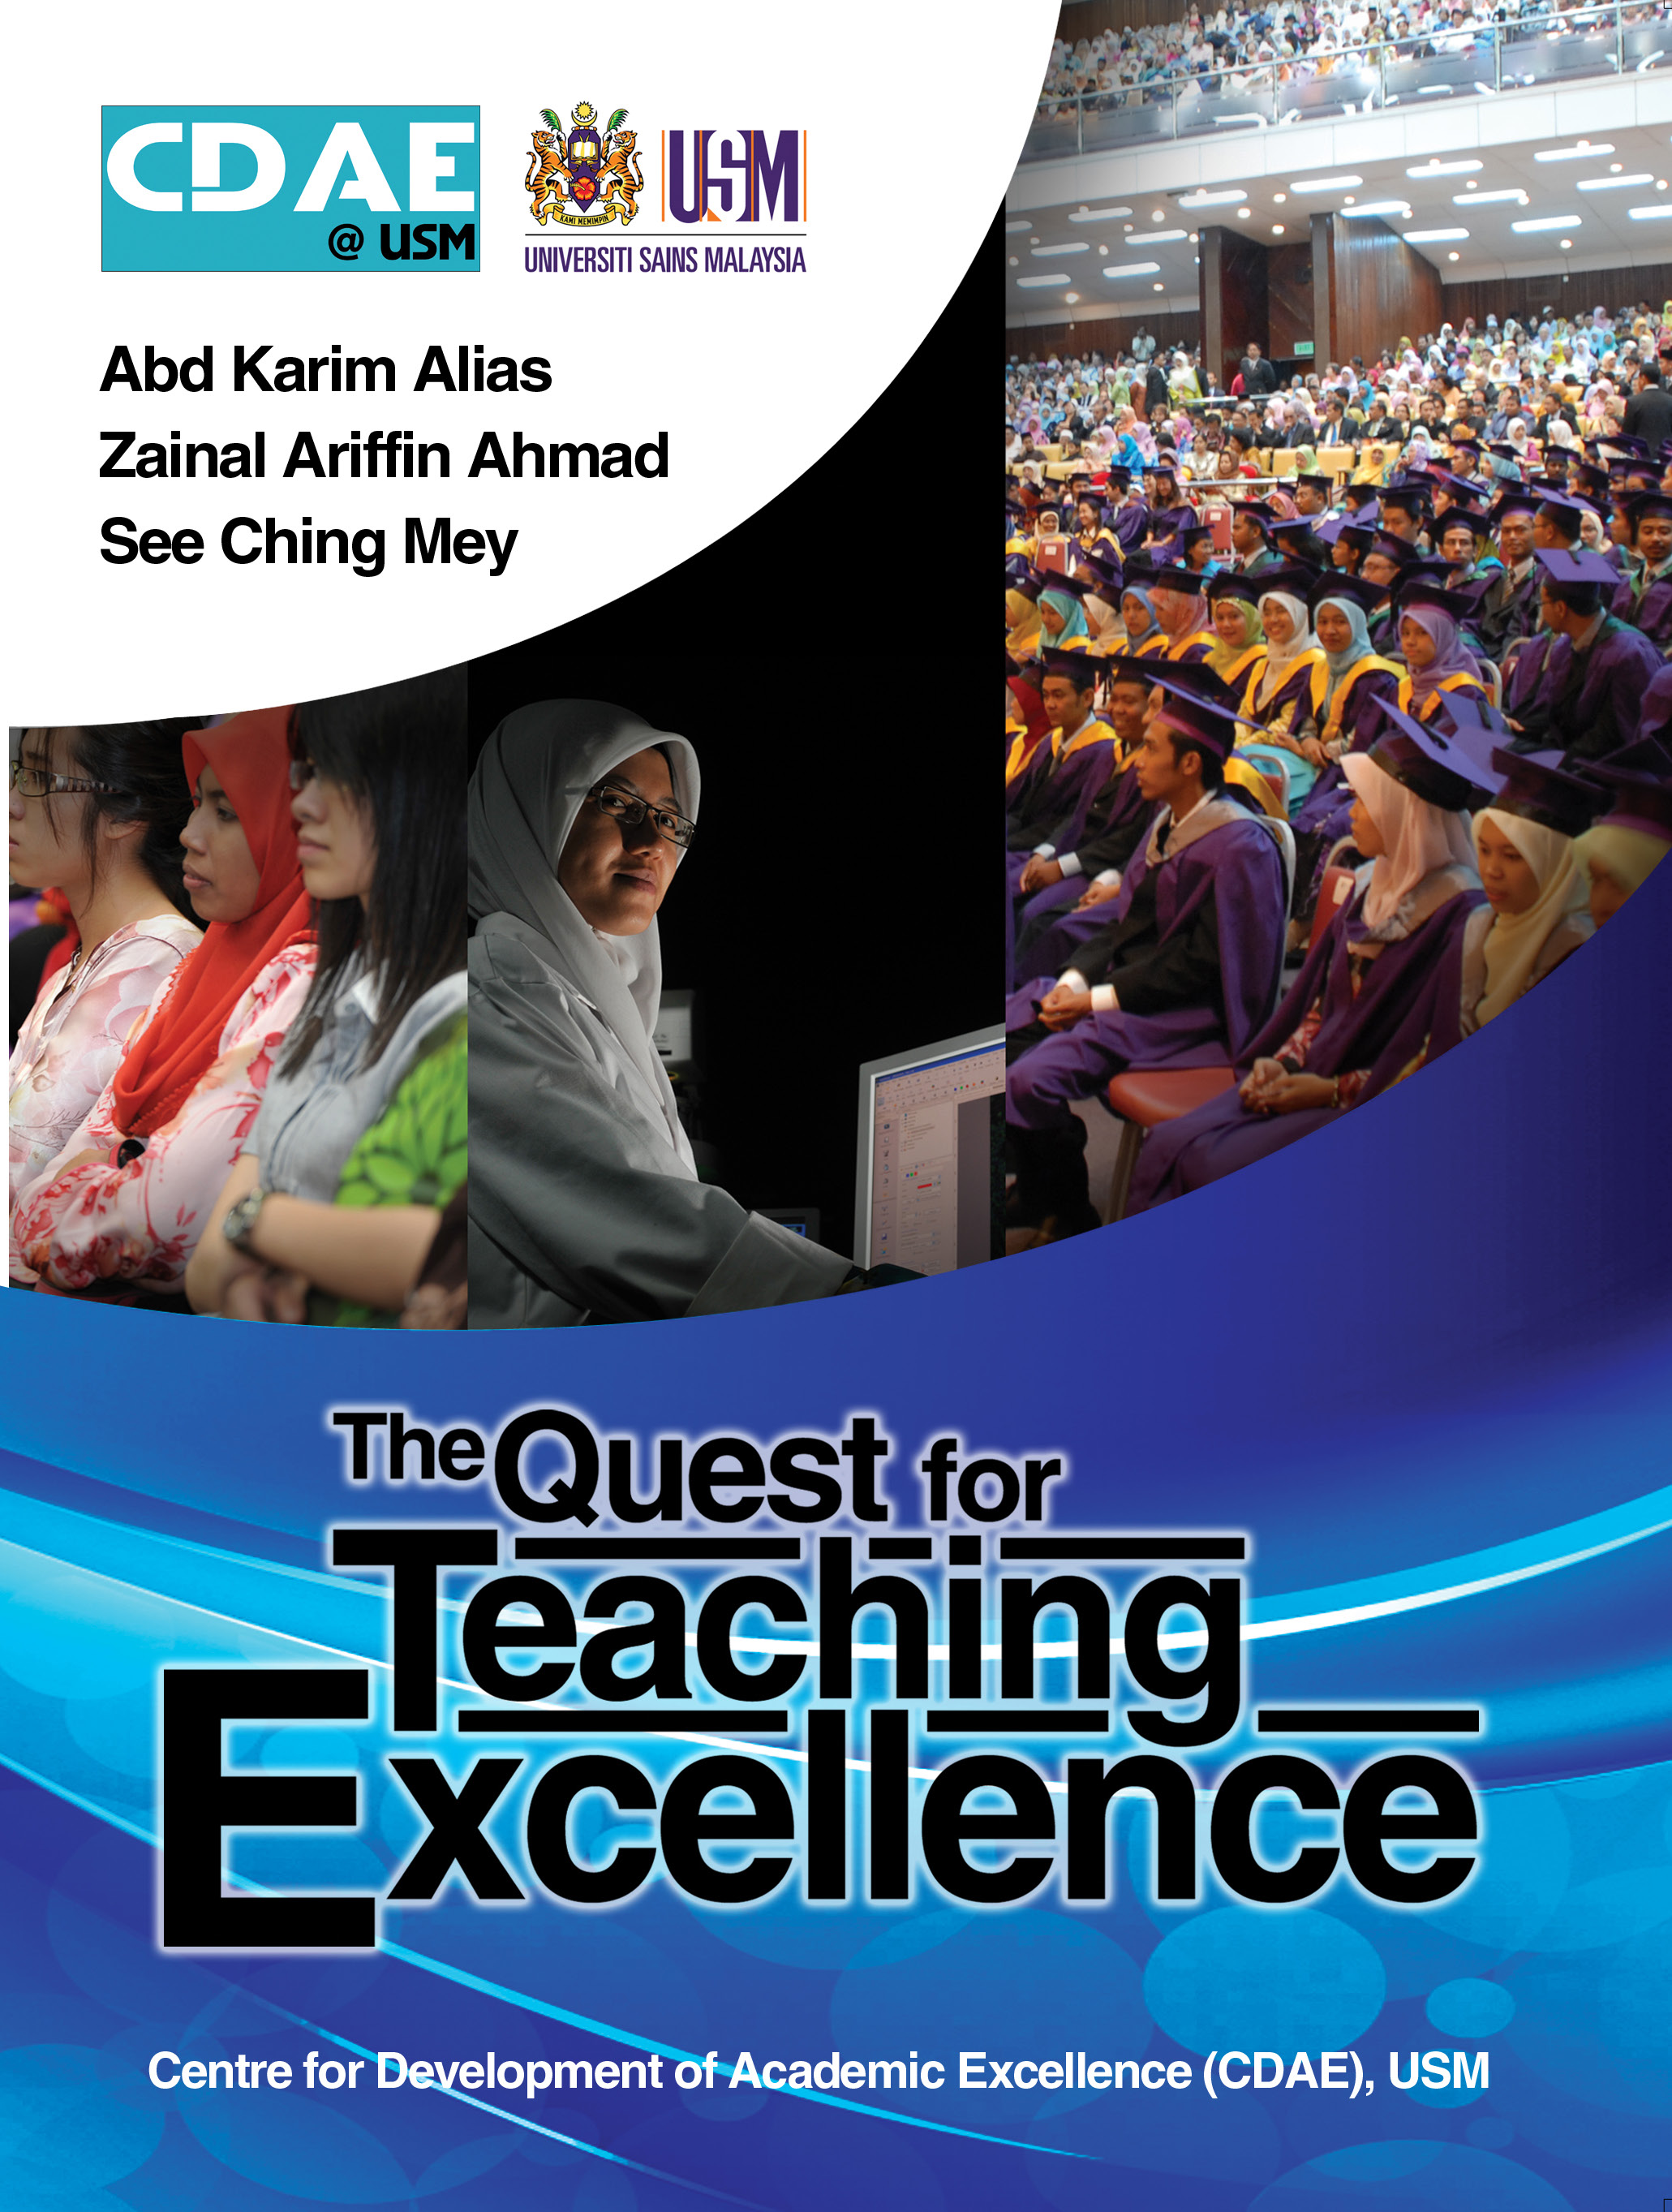 The Quest for Teaching Excellence Page 001